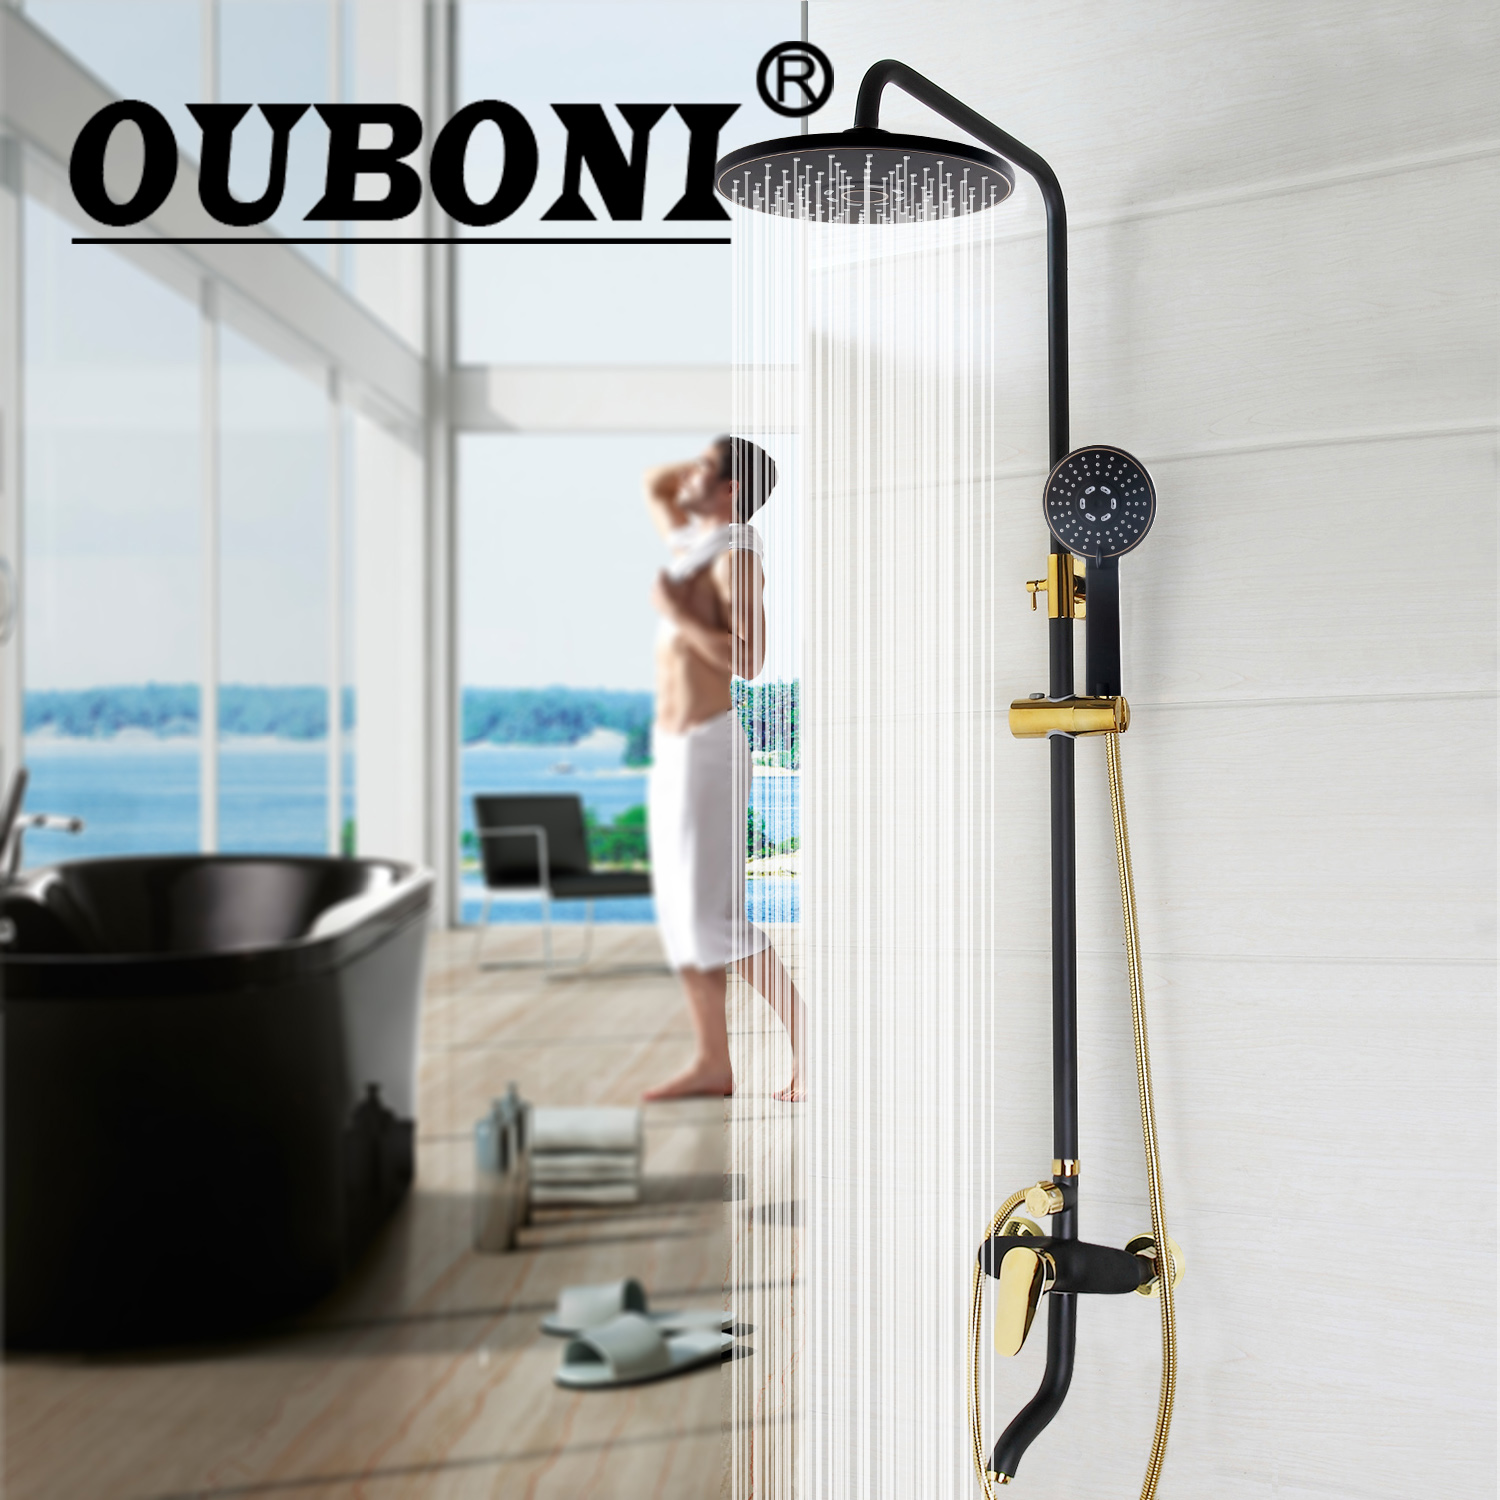 OUBONI Luxury Bathroom Rain Mixer Shower Combo Set Wall Mounted Rainfall Shower Head System Black Gold-plated Shower Faucet